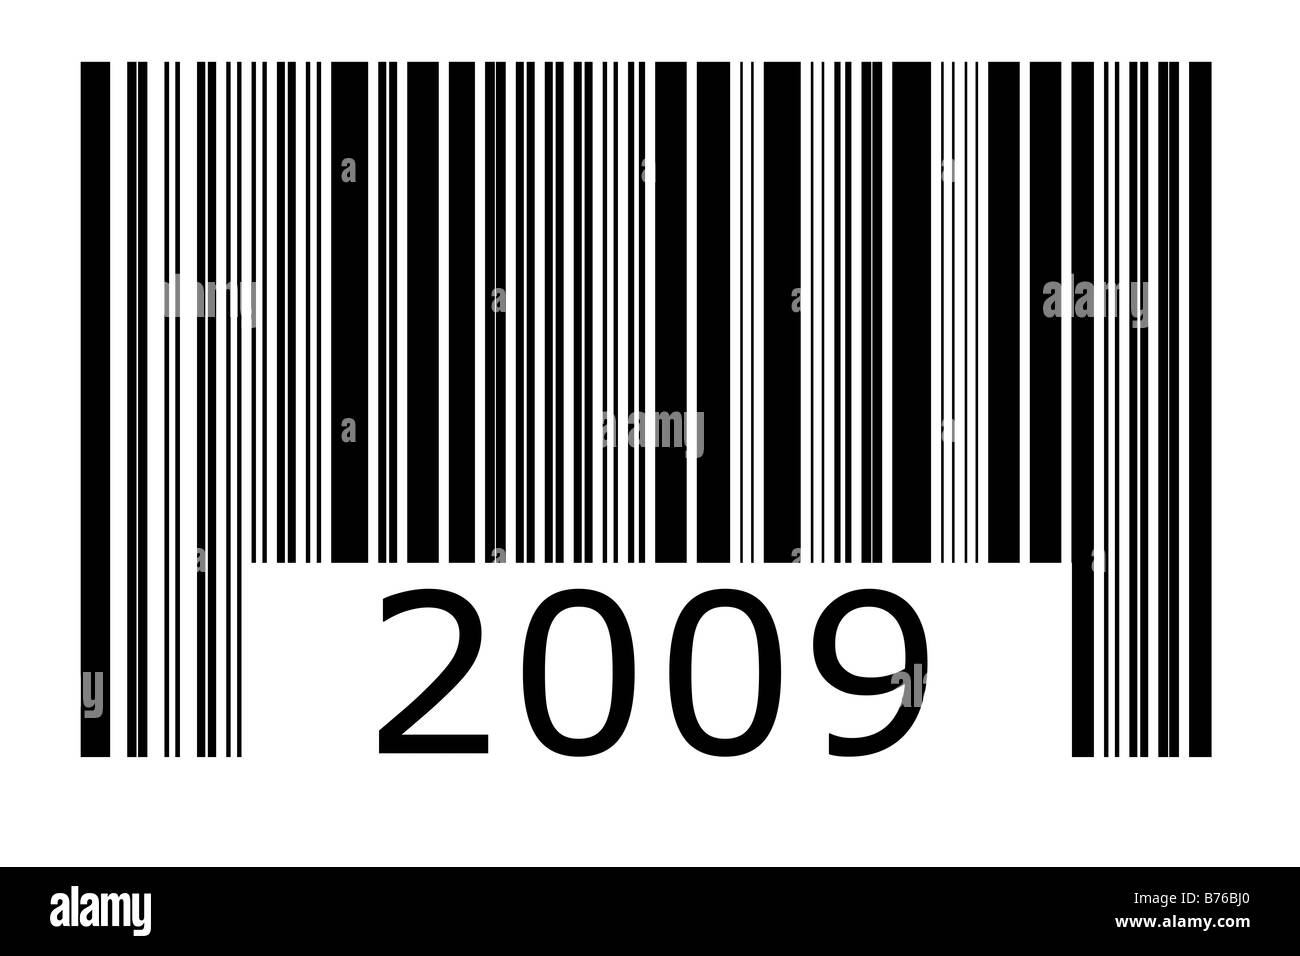 2009 barcode in black and white - Stock Image